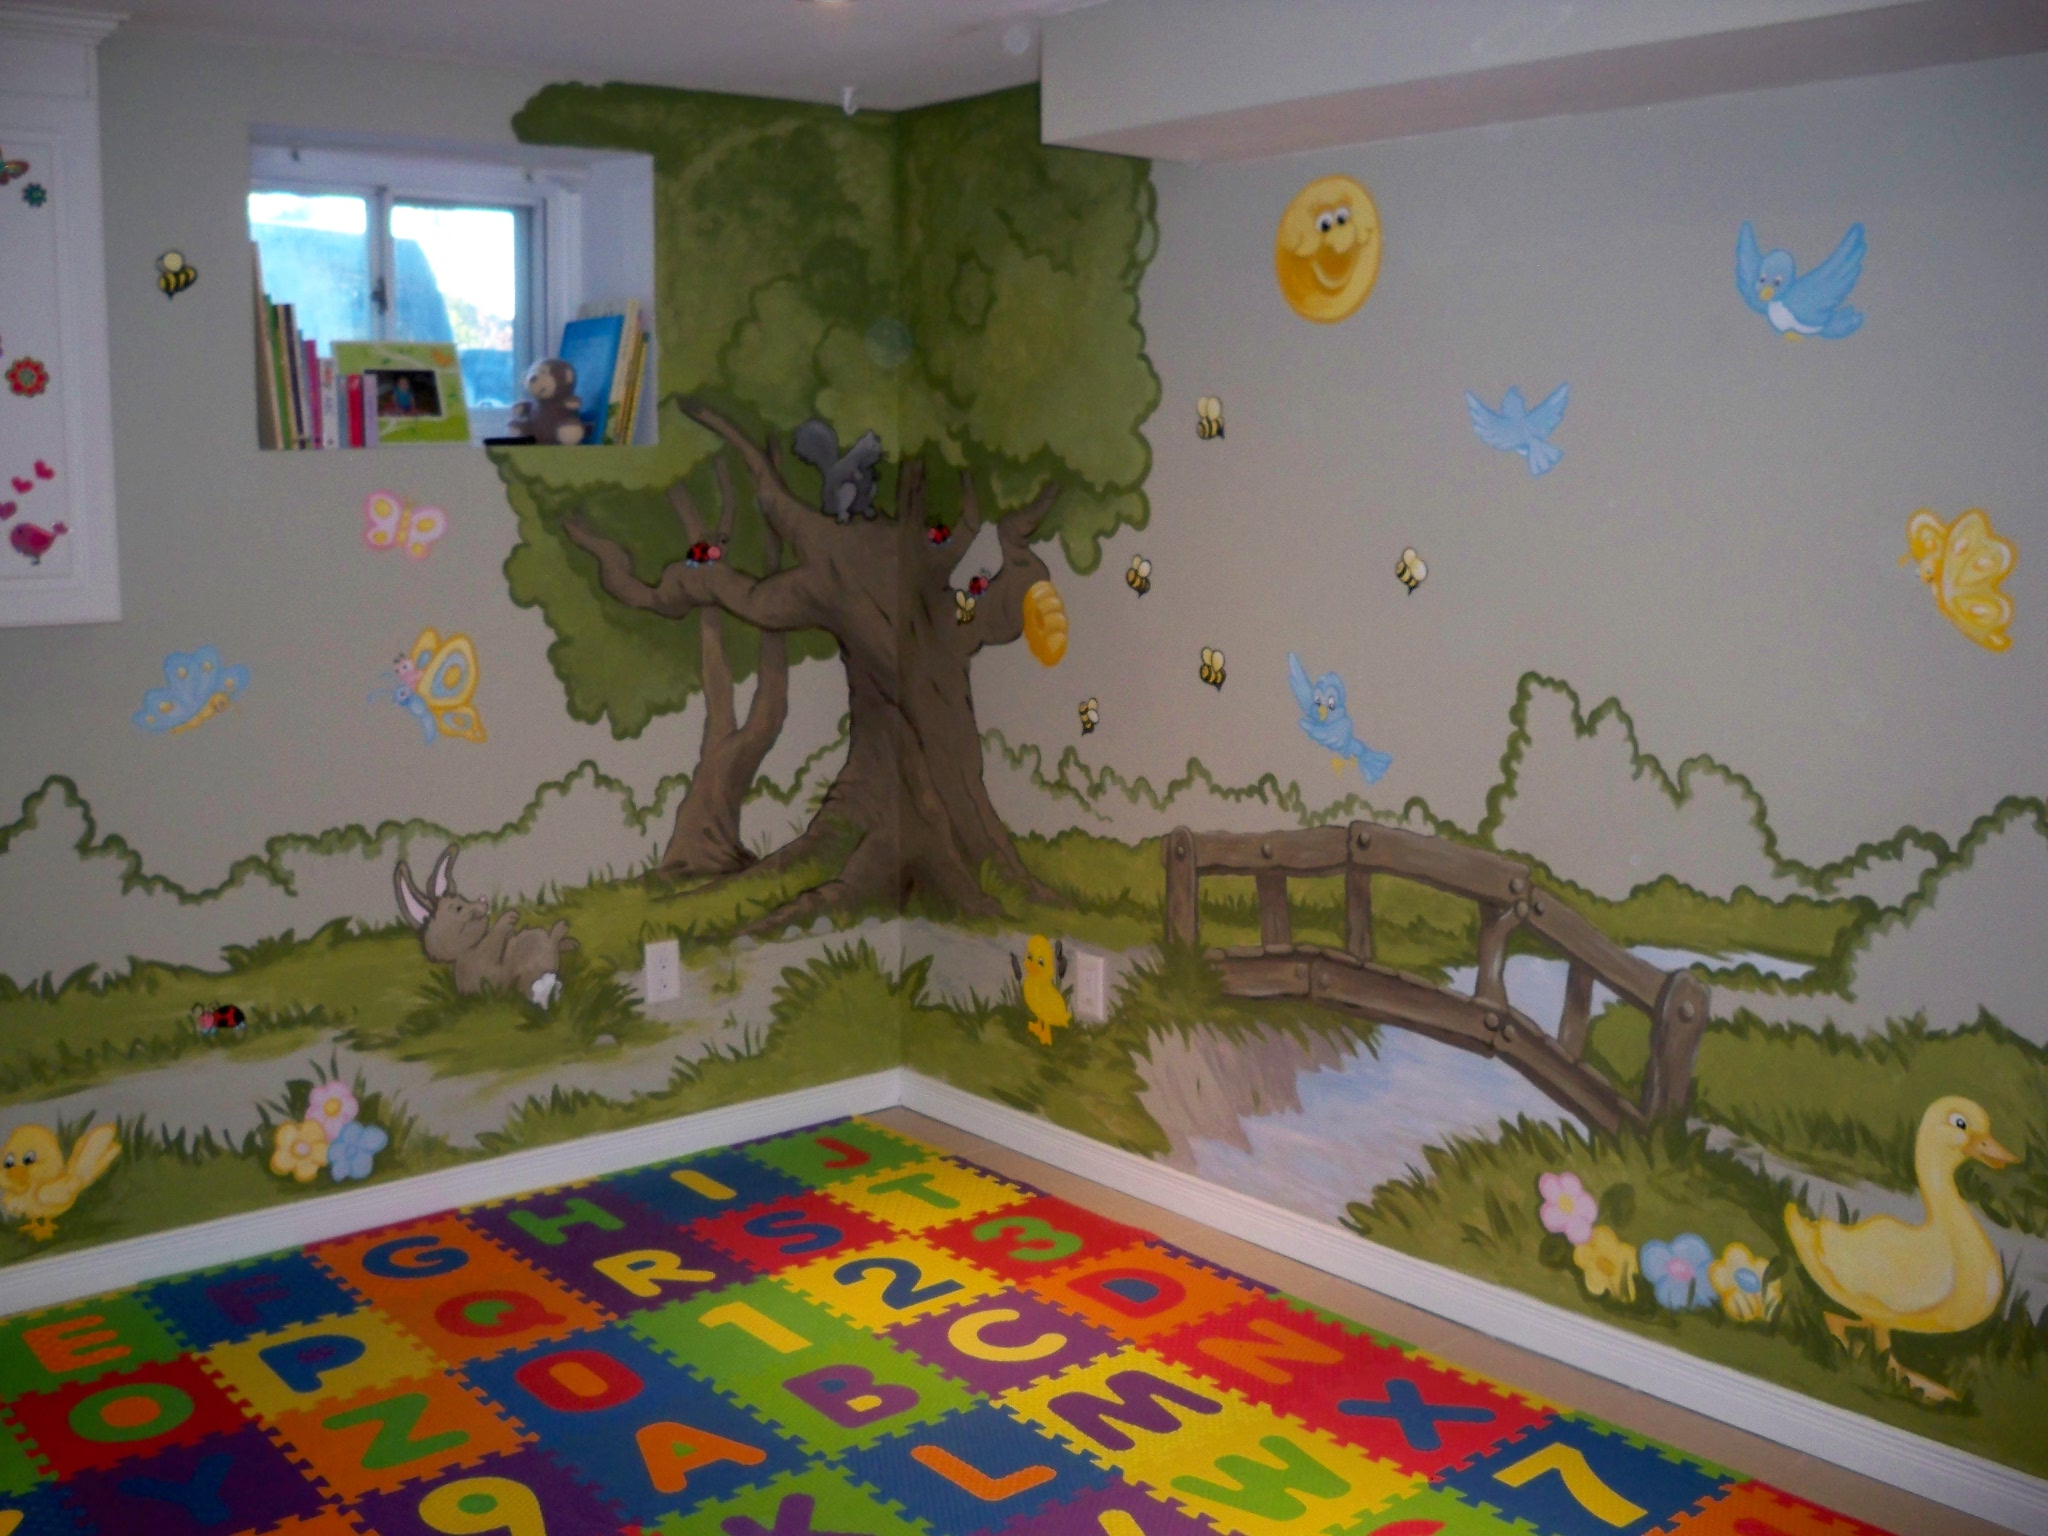 Murals By Marg Genevieve's Playroom Mural 7.JPG